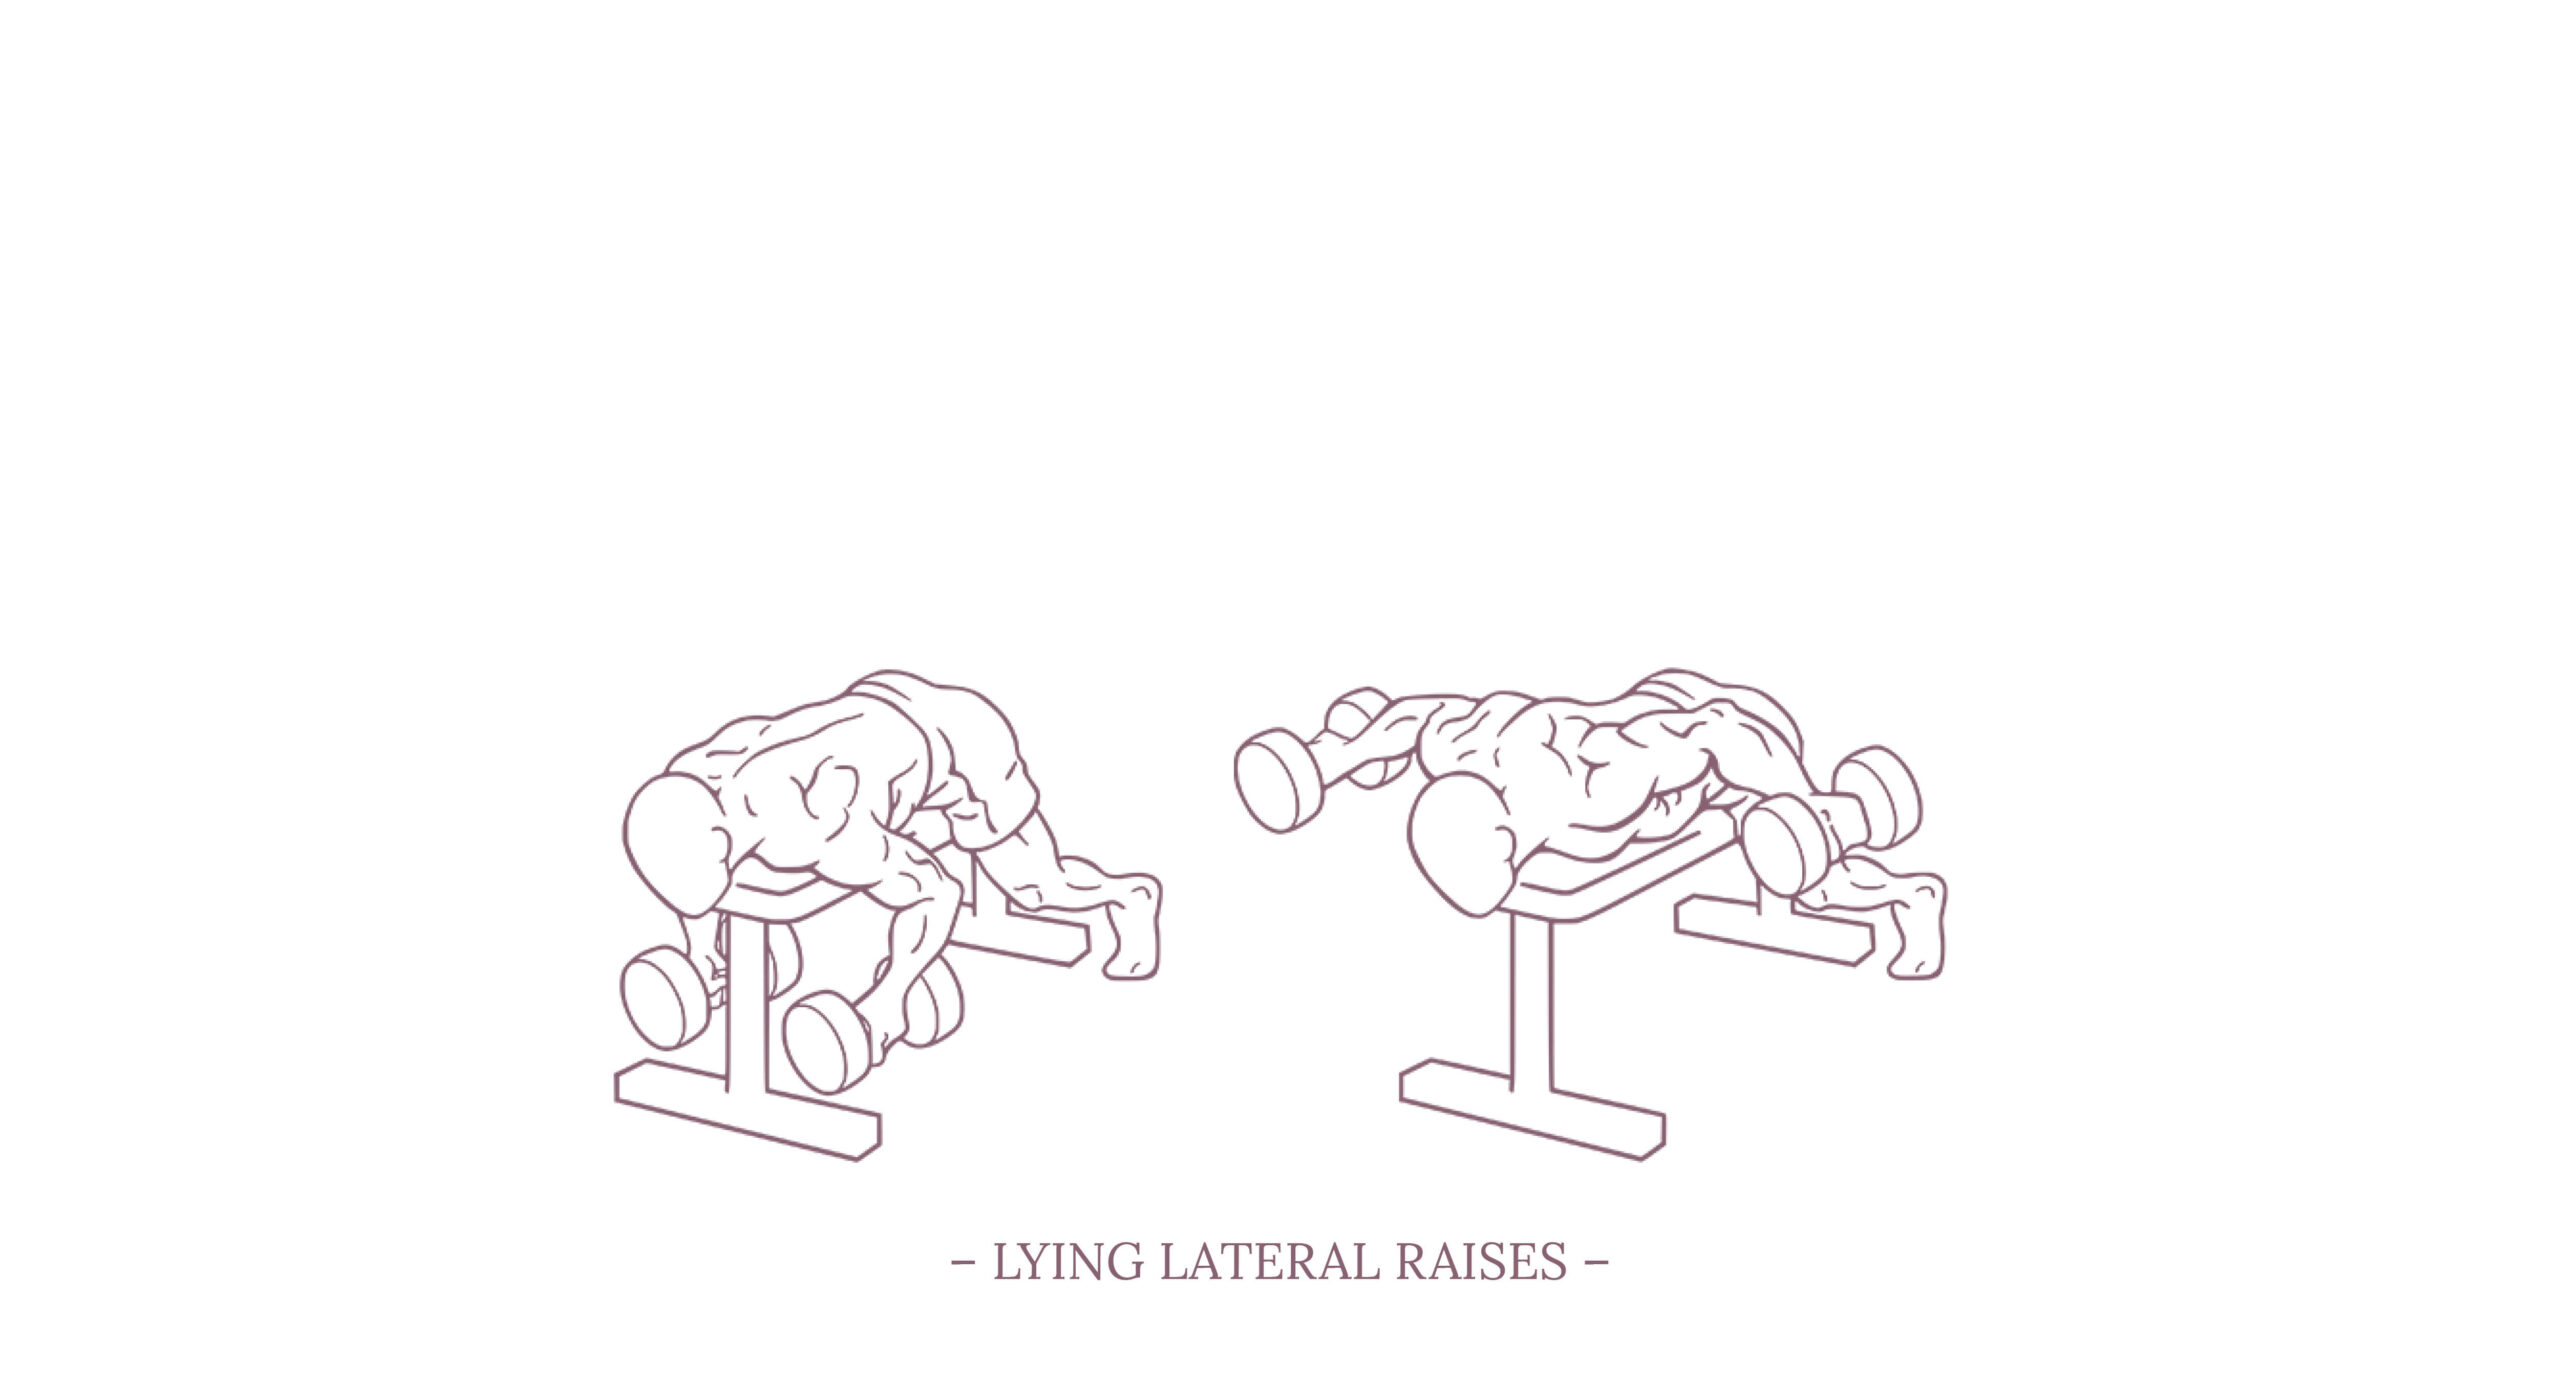 Lying Lateral Raises Illustration